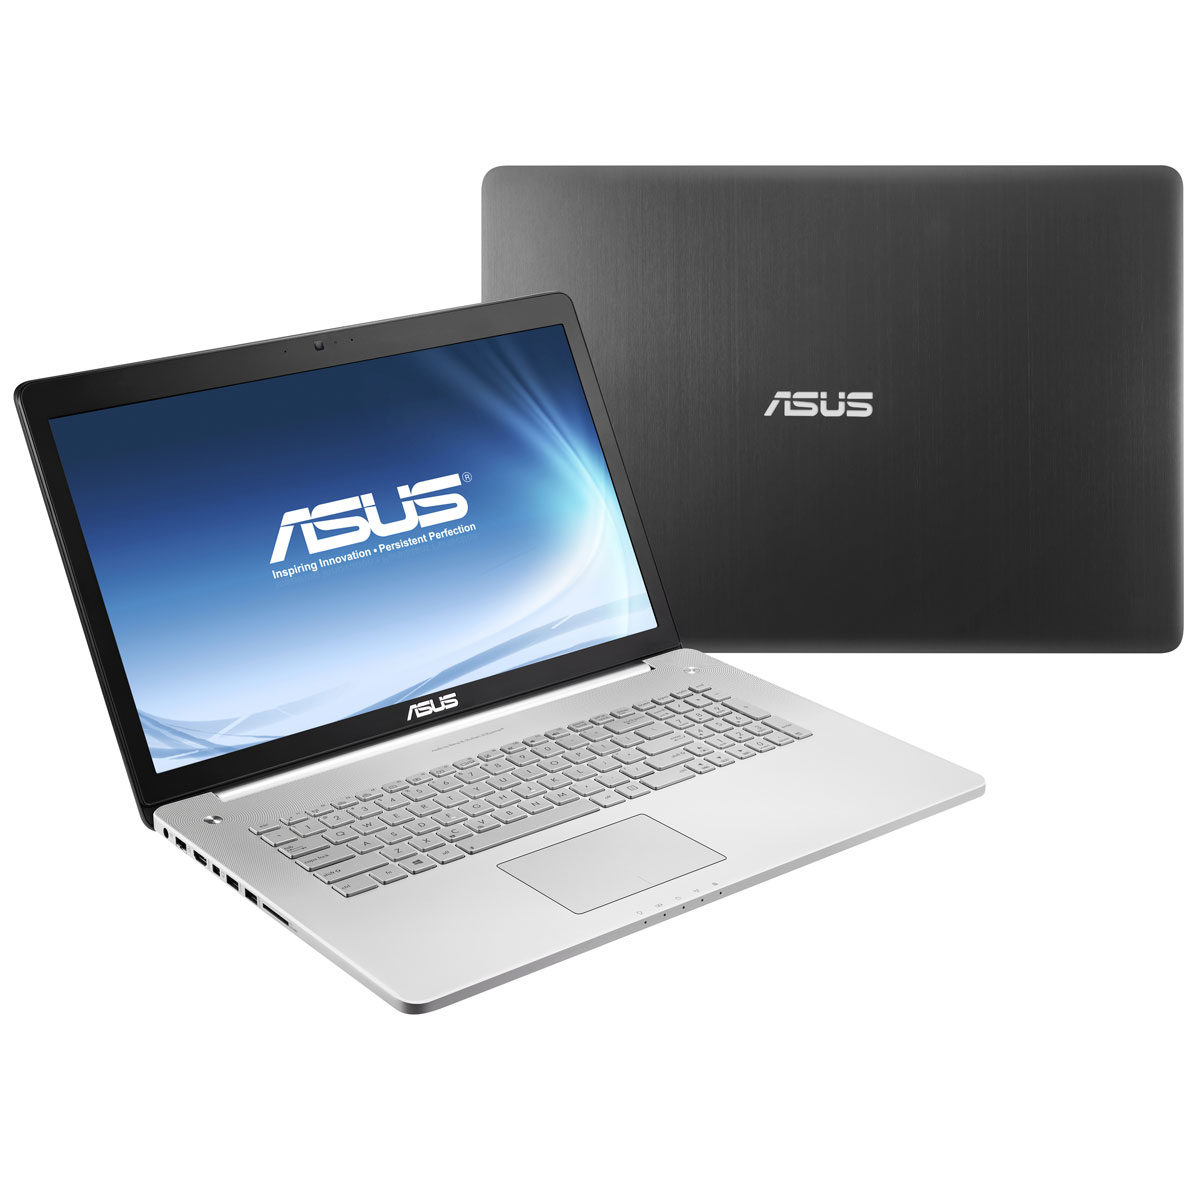 "PC portable ASUS N750JV-T4221H Intel Core i7-4700HQ 16 Go 1 To 17.3"" LED NVIDIA GeForce GT 750M Lecteur Blu-ray/Graveur DVD Wi-Fi N/Bluetooth Webcam Windows 8 64 bits (garantie constructeur 1 an)"